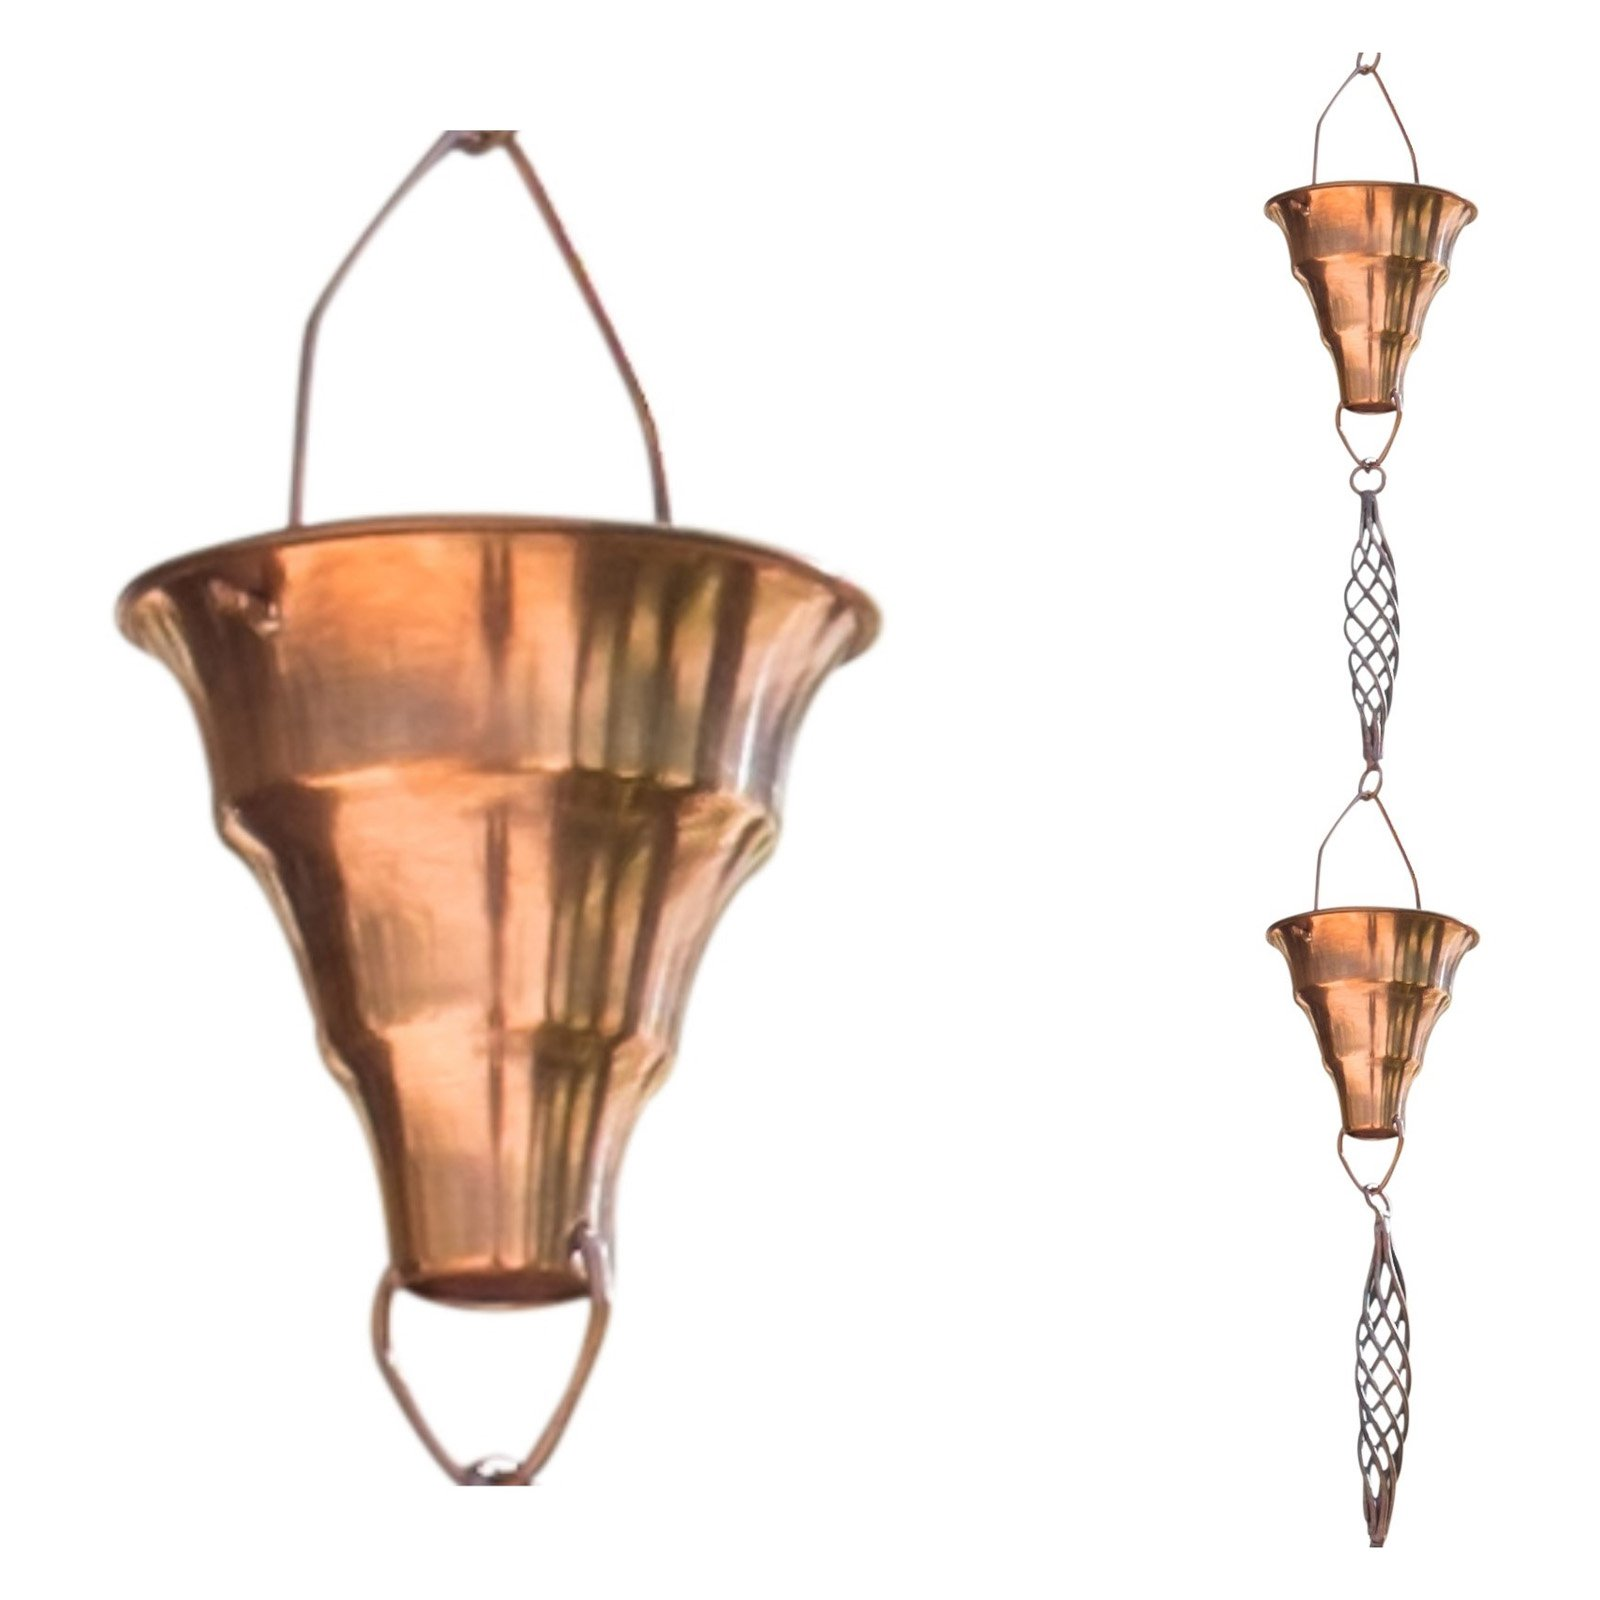 Monarch Pure Copper Tara Rain Chain - 8.5 ft.